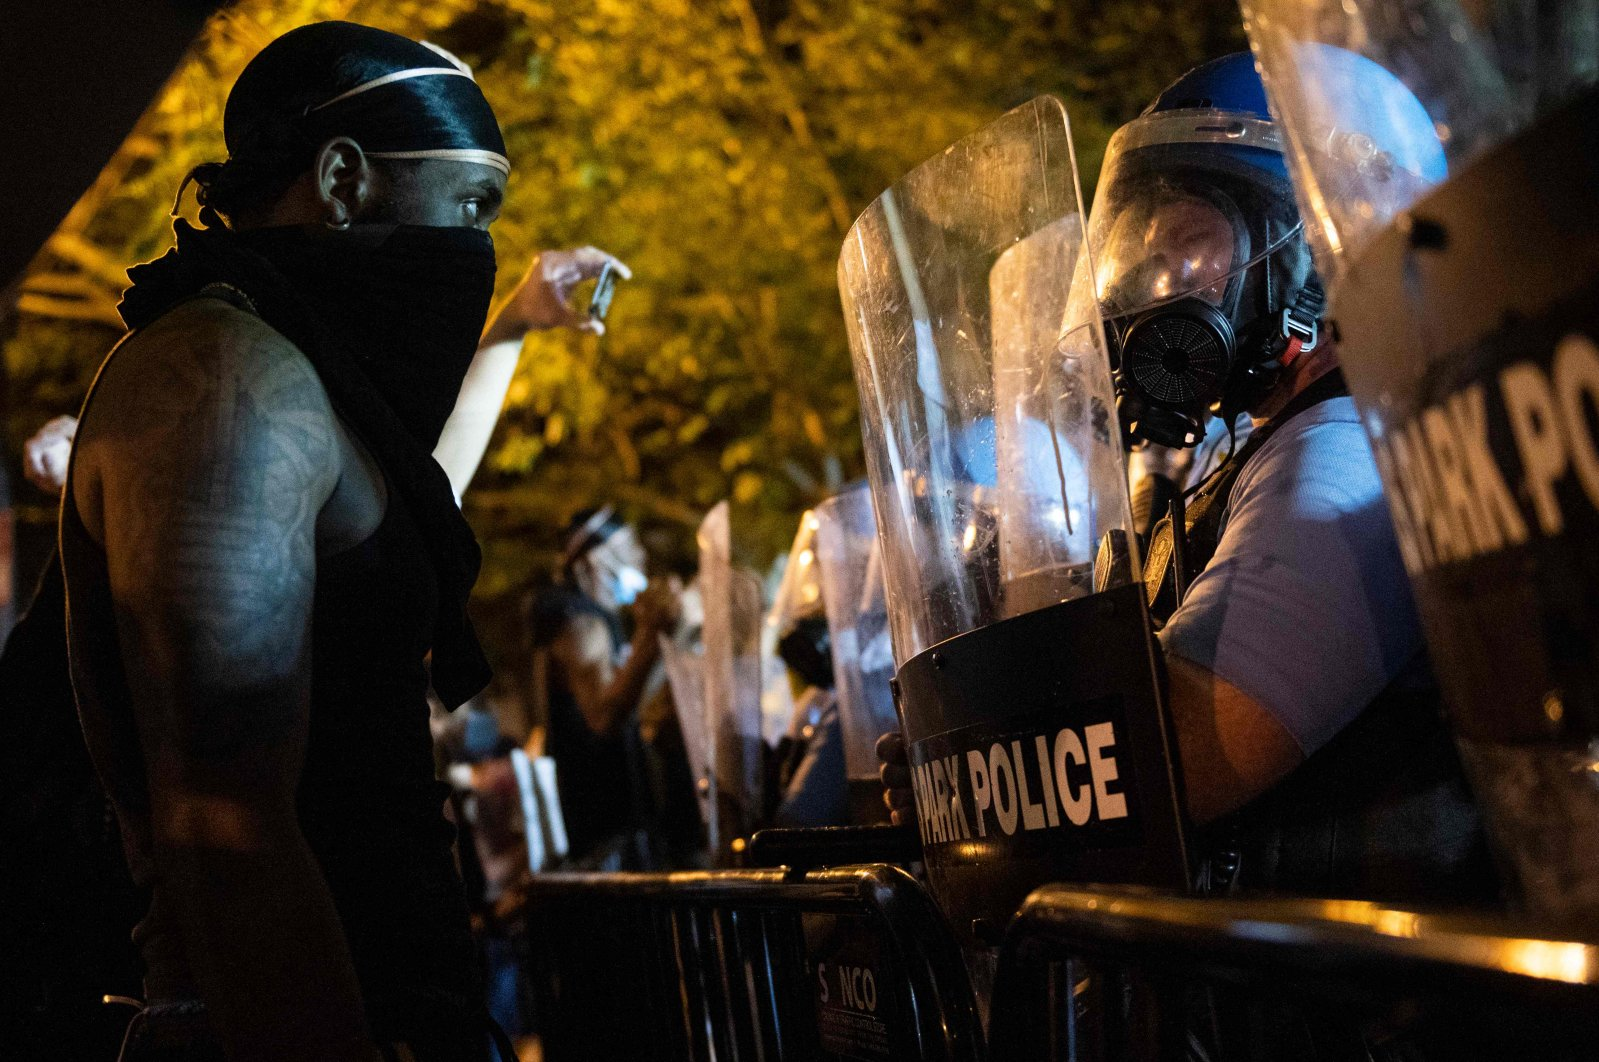 Military Police face off with protesters across from the White House during a protest over the death of George Floyd, an unarmed black man, who died after a Minneapolis police officer kneeled on his neck for several minutes, Washington, D.C., May 30, 2020. (AFP Photo)